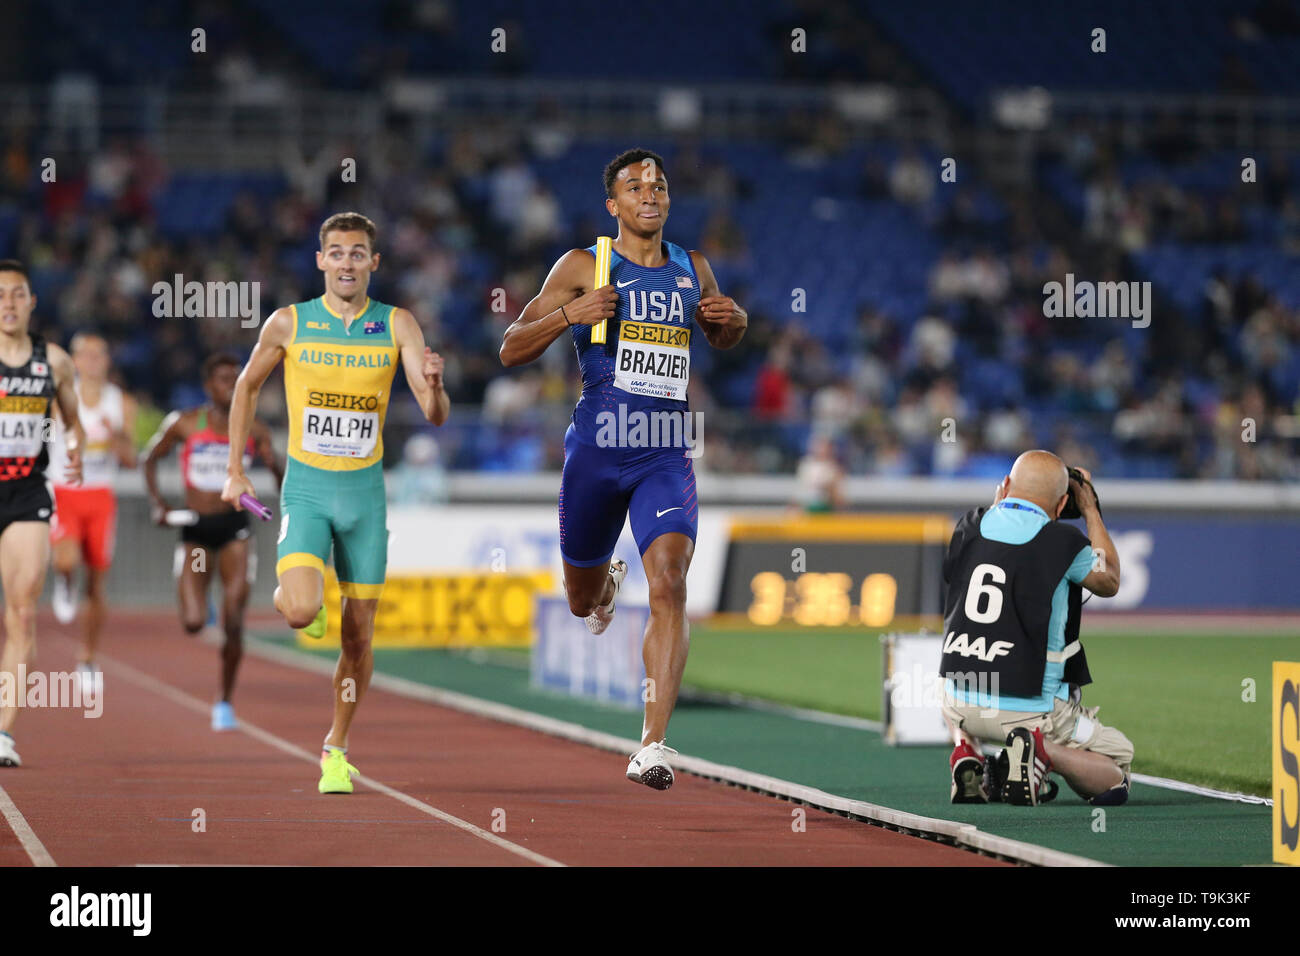 YOKOHAMA, JAPAN - MAY 10: Donavan Brazier of the USA in the mixed 2x2x400m relay during Day 1 of the 2019 IAAF World Relay Championships at the Nissan Stadium on Saturday May 11, 2019 in Yokohama, Japan. (Photo by Roger Sedres for the IAAF) - Stock Image